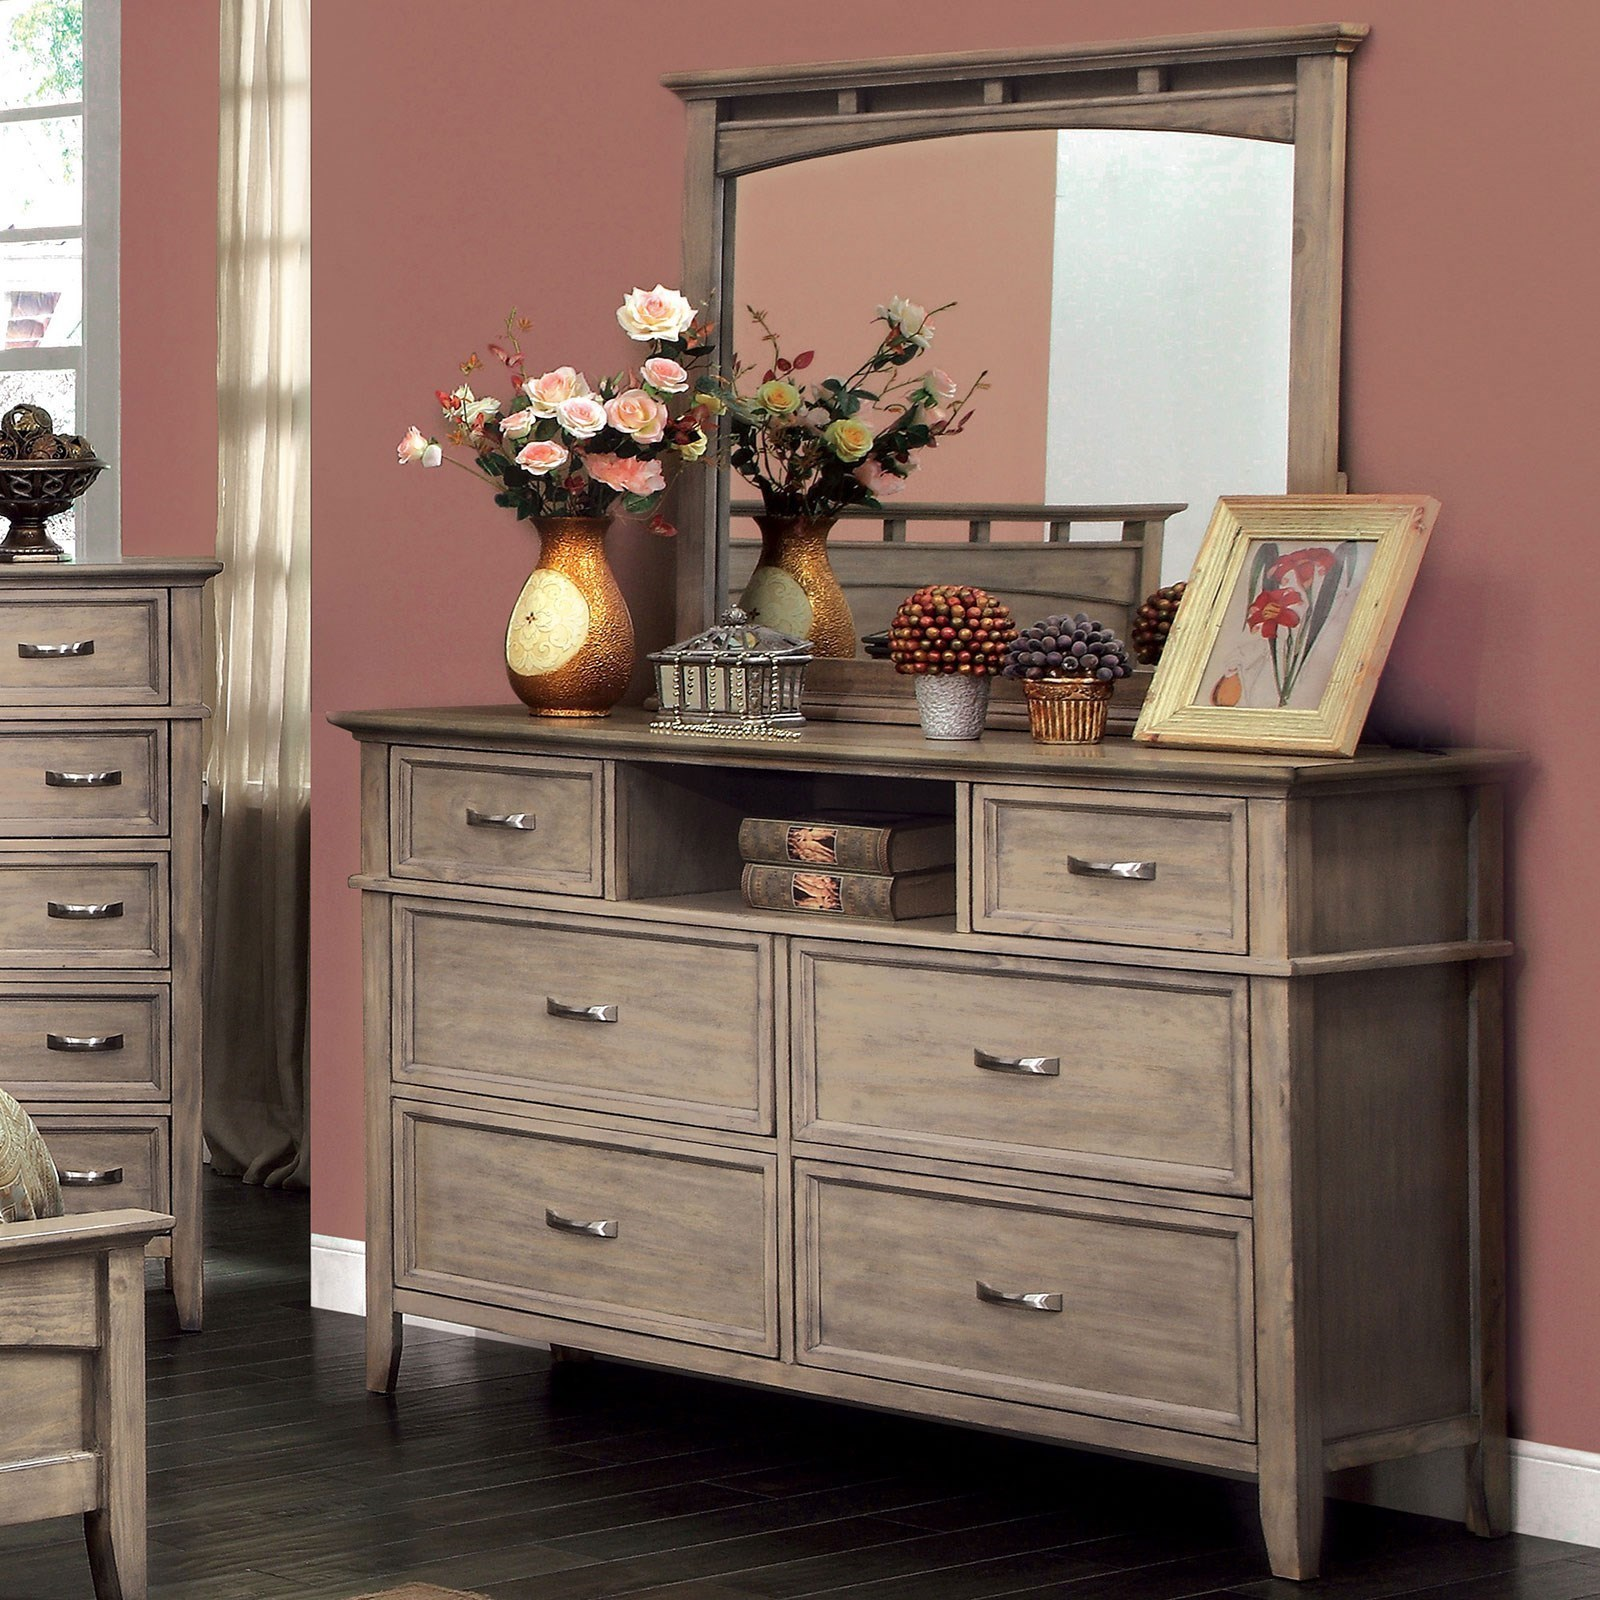 Loxley Dresser Household Furniture Dressers